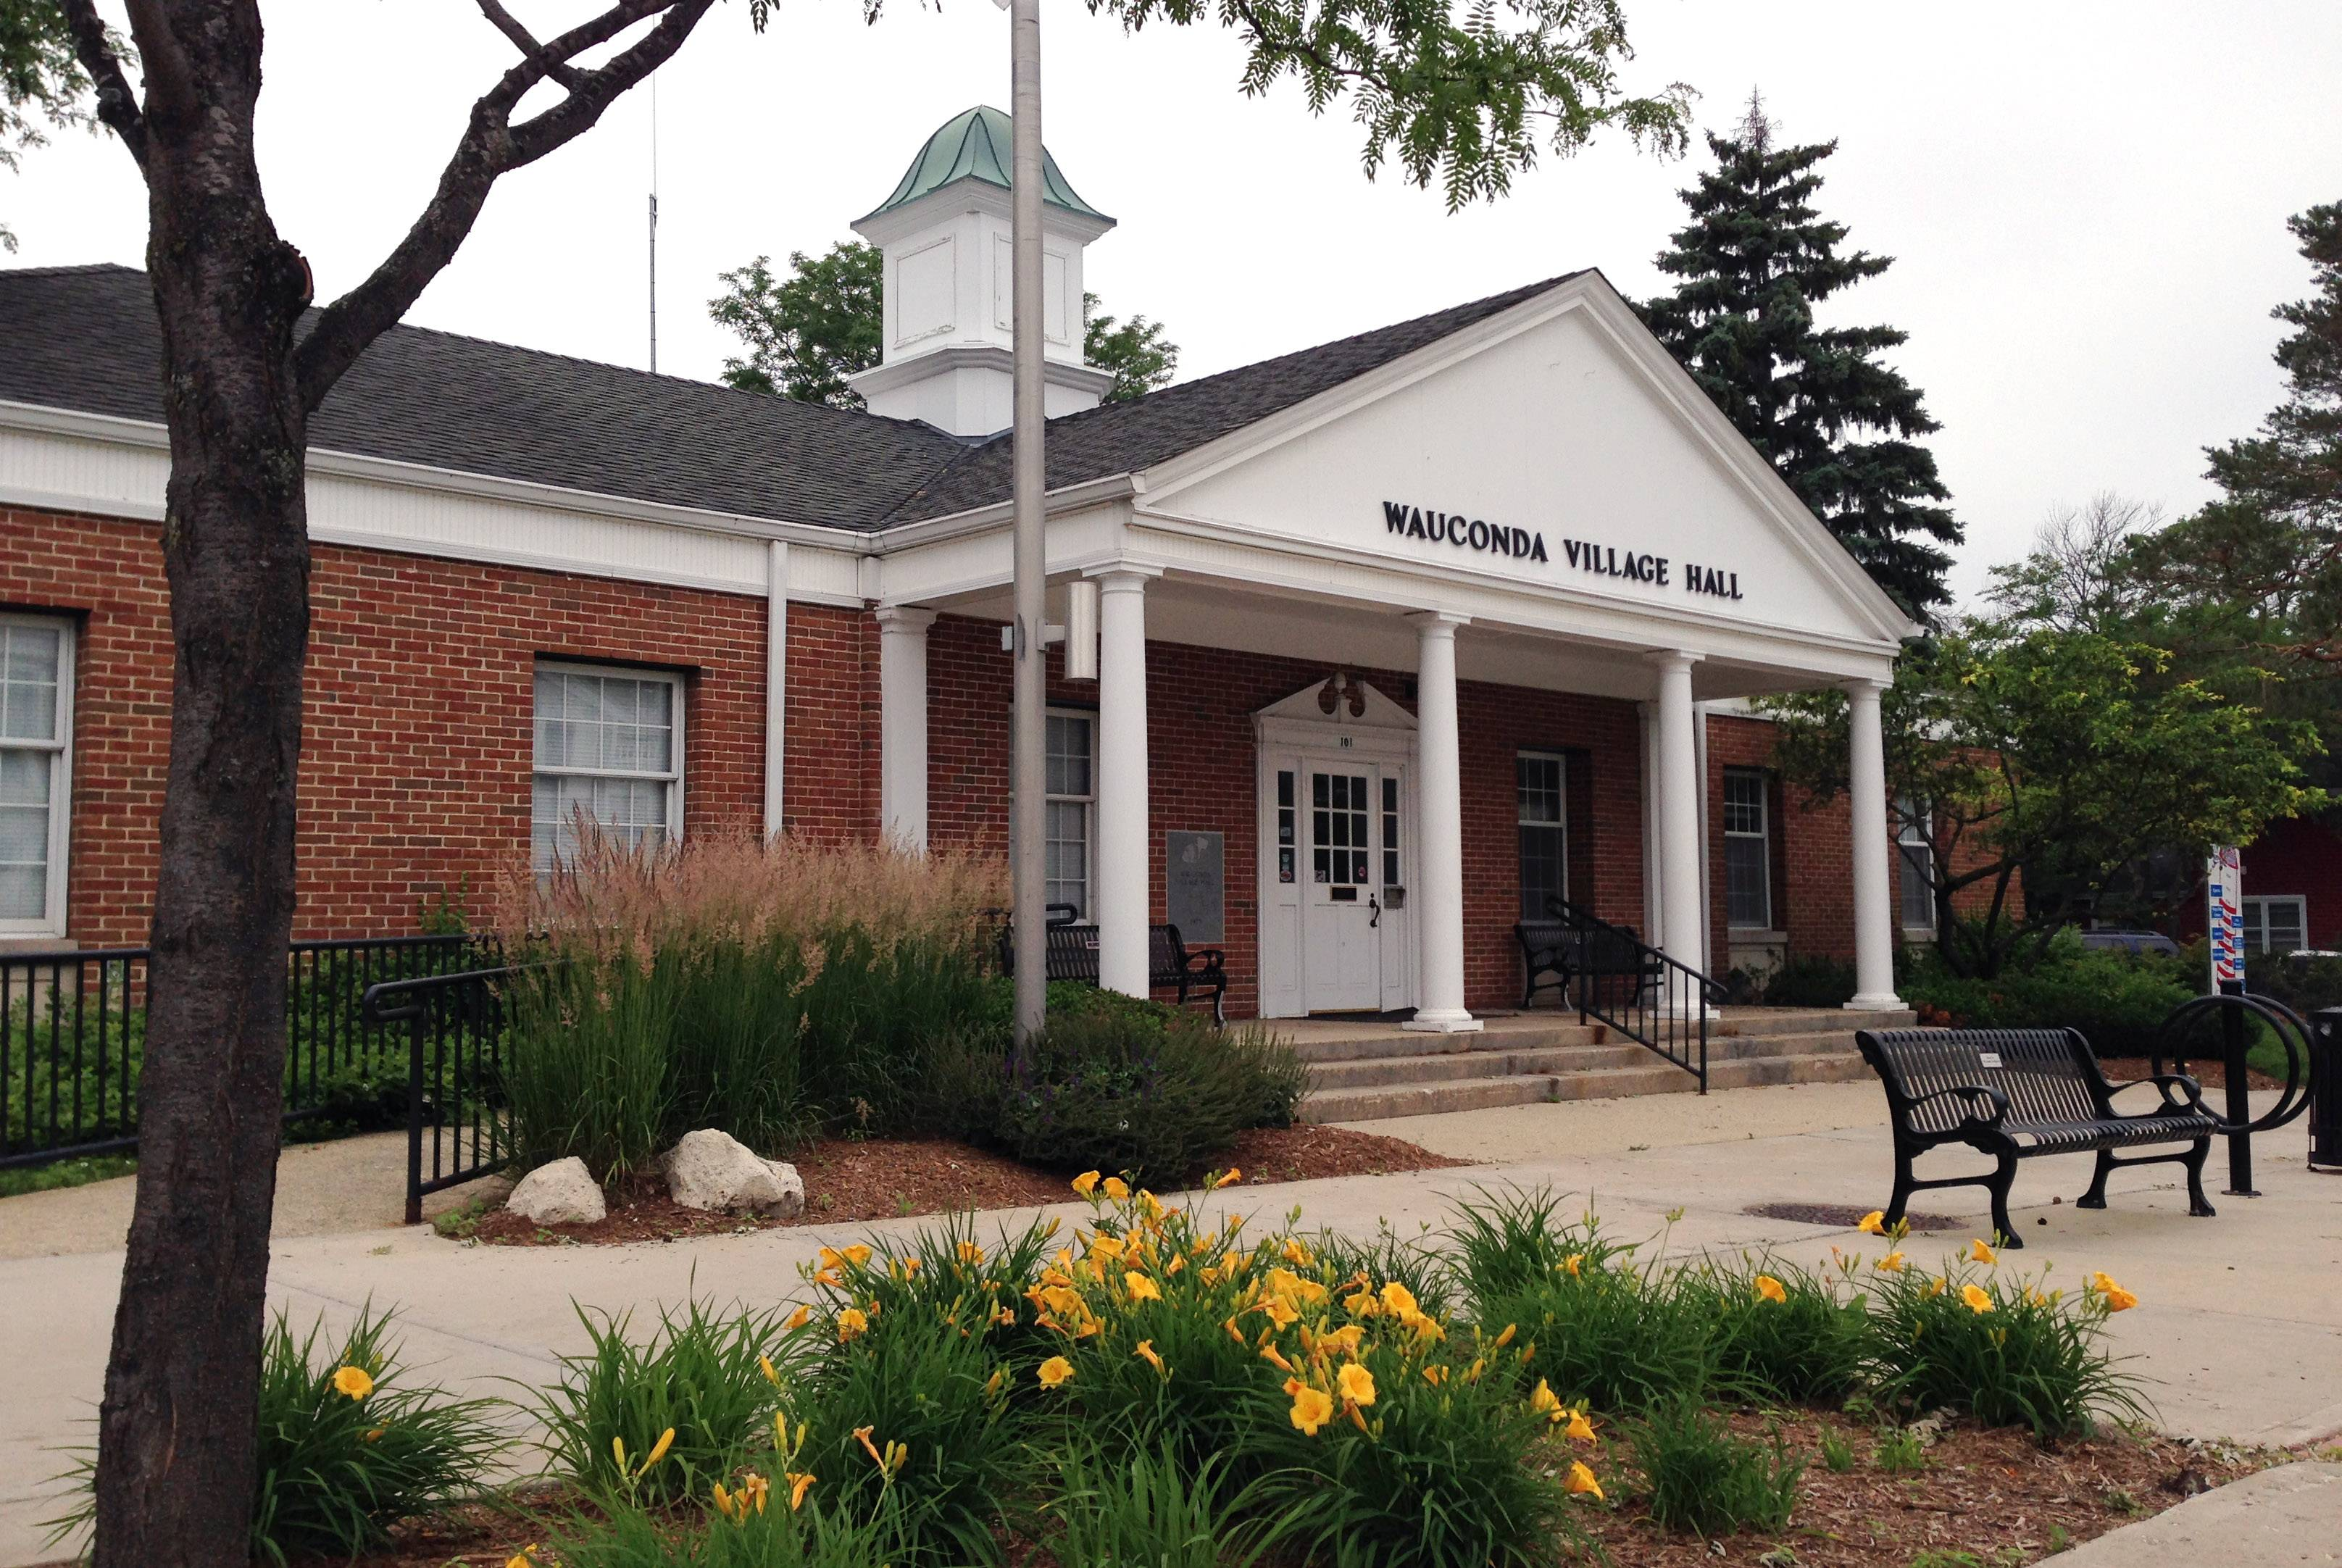 Officials are considering restricting parking at village hall on meeting nights.